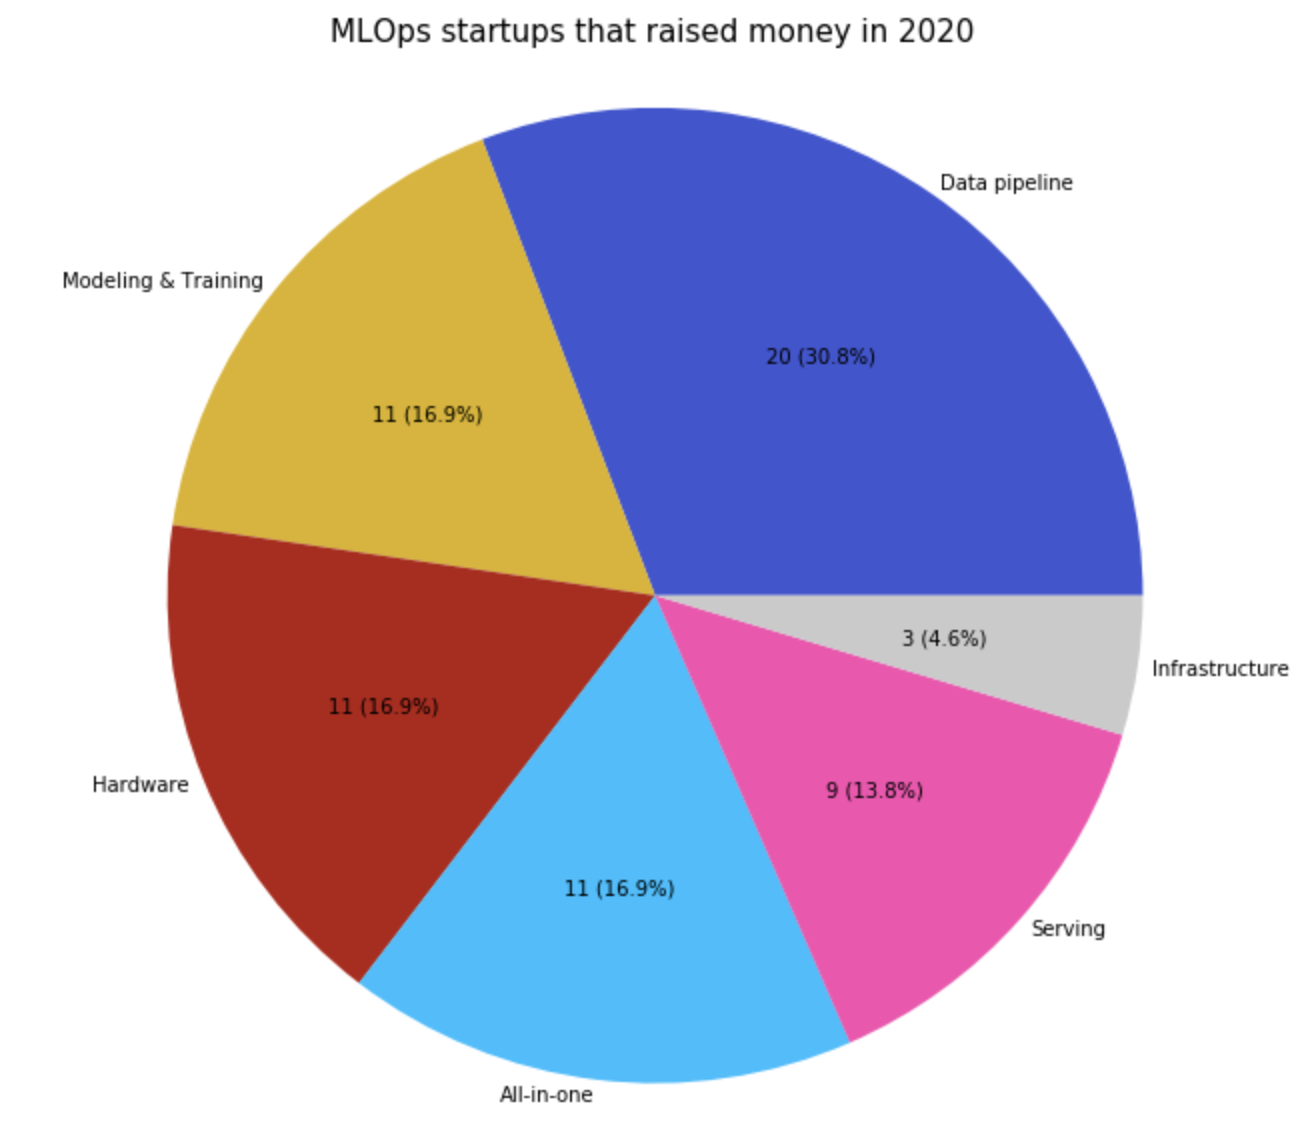 MLOps startups that raised money in 2020